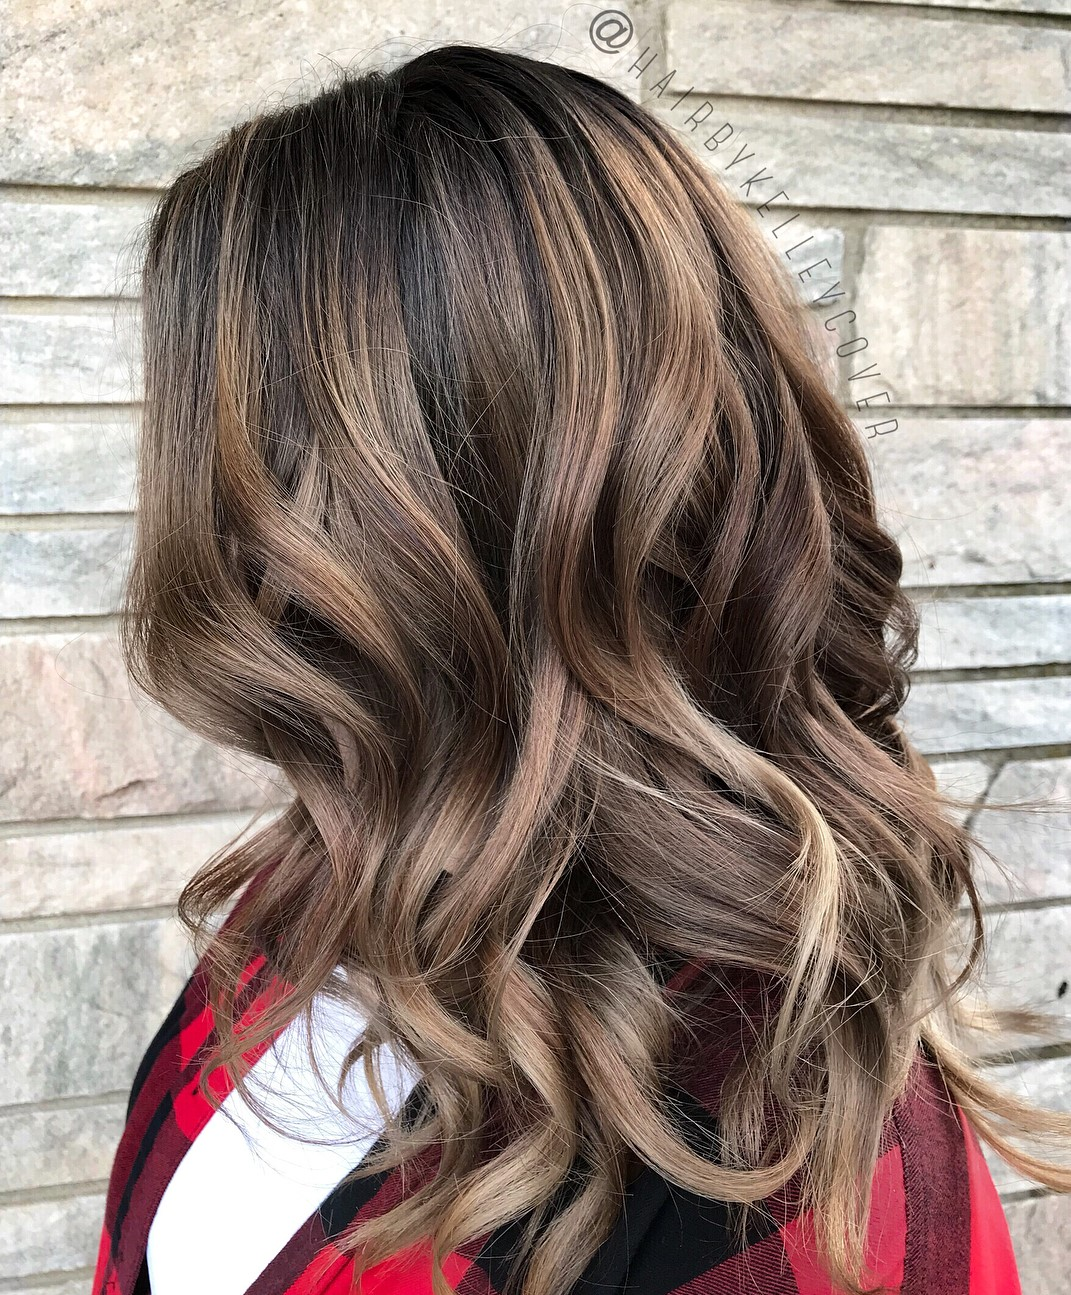 Long Dark Hair with Light Brown Balayage